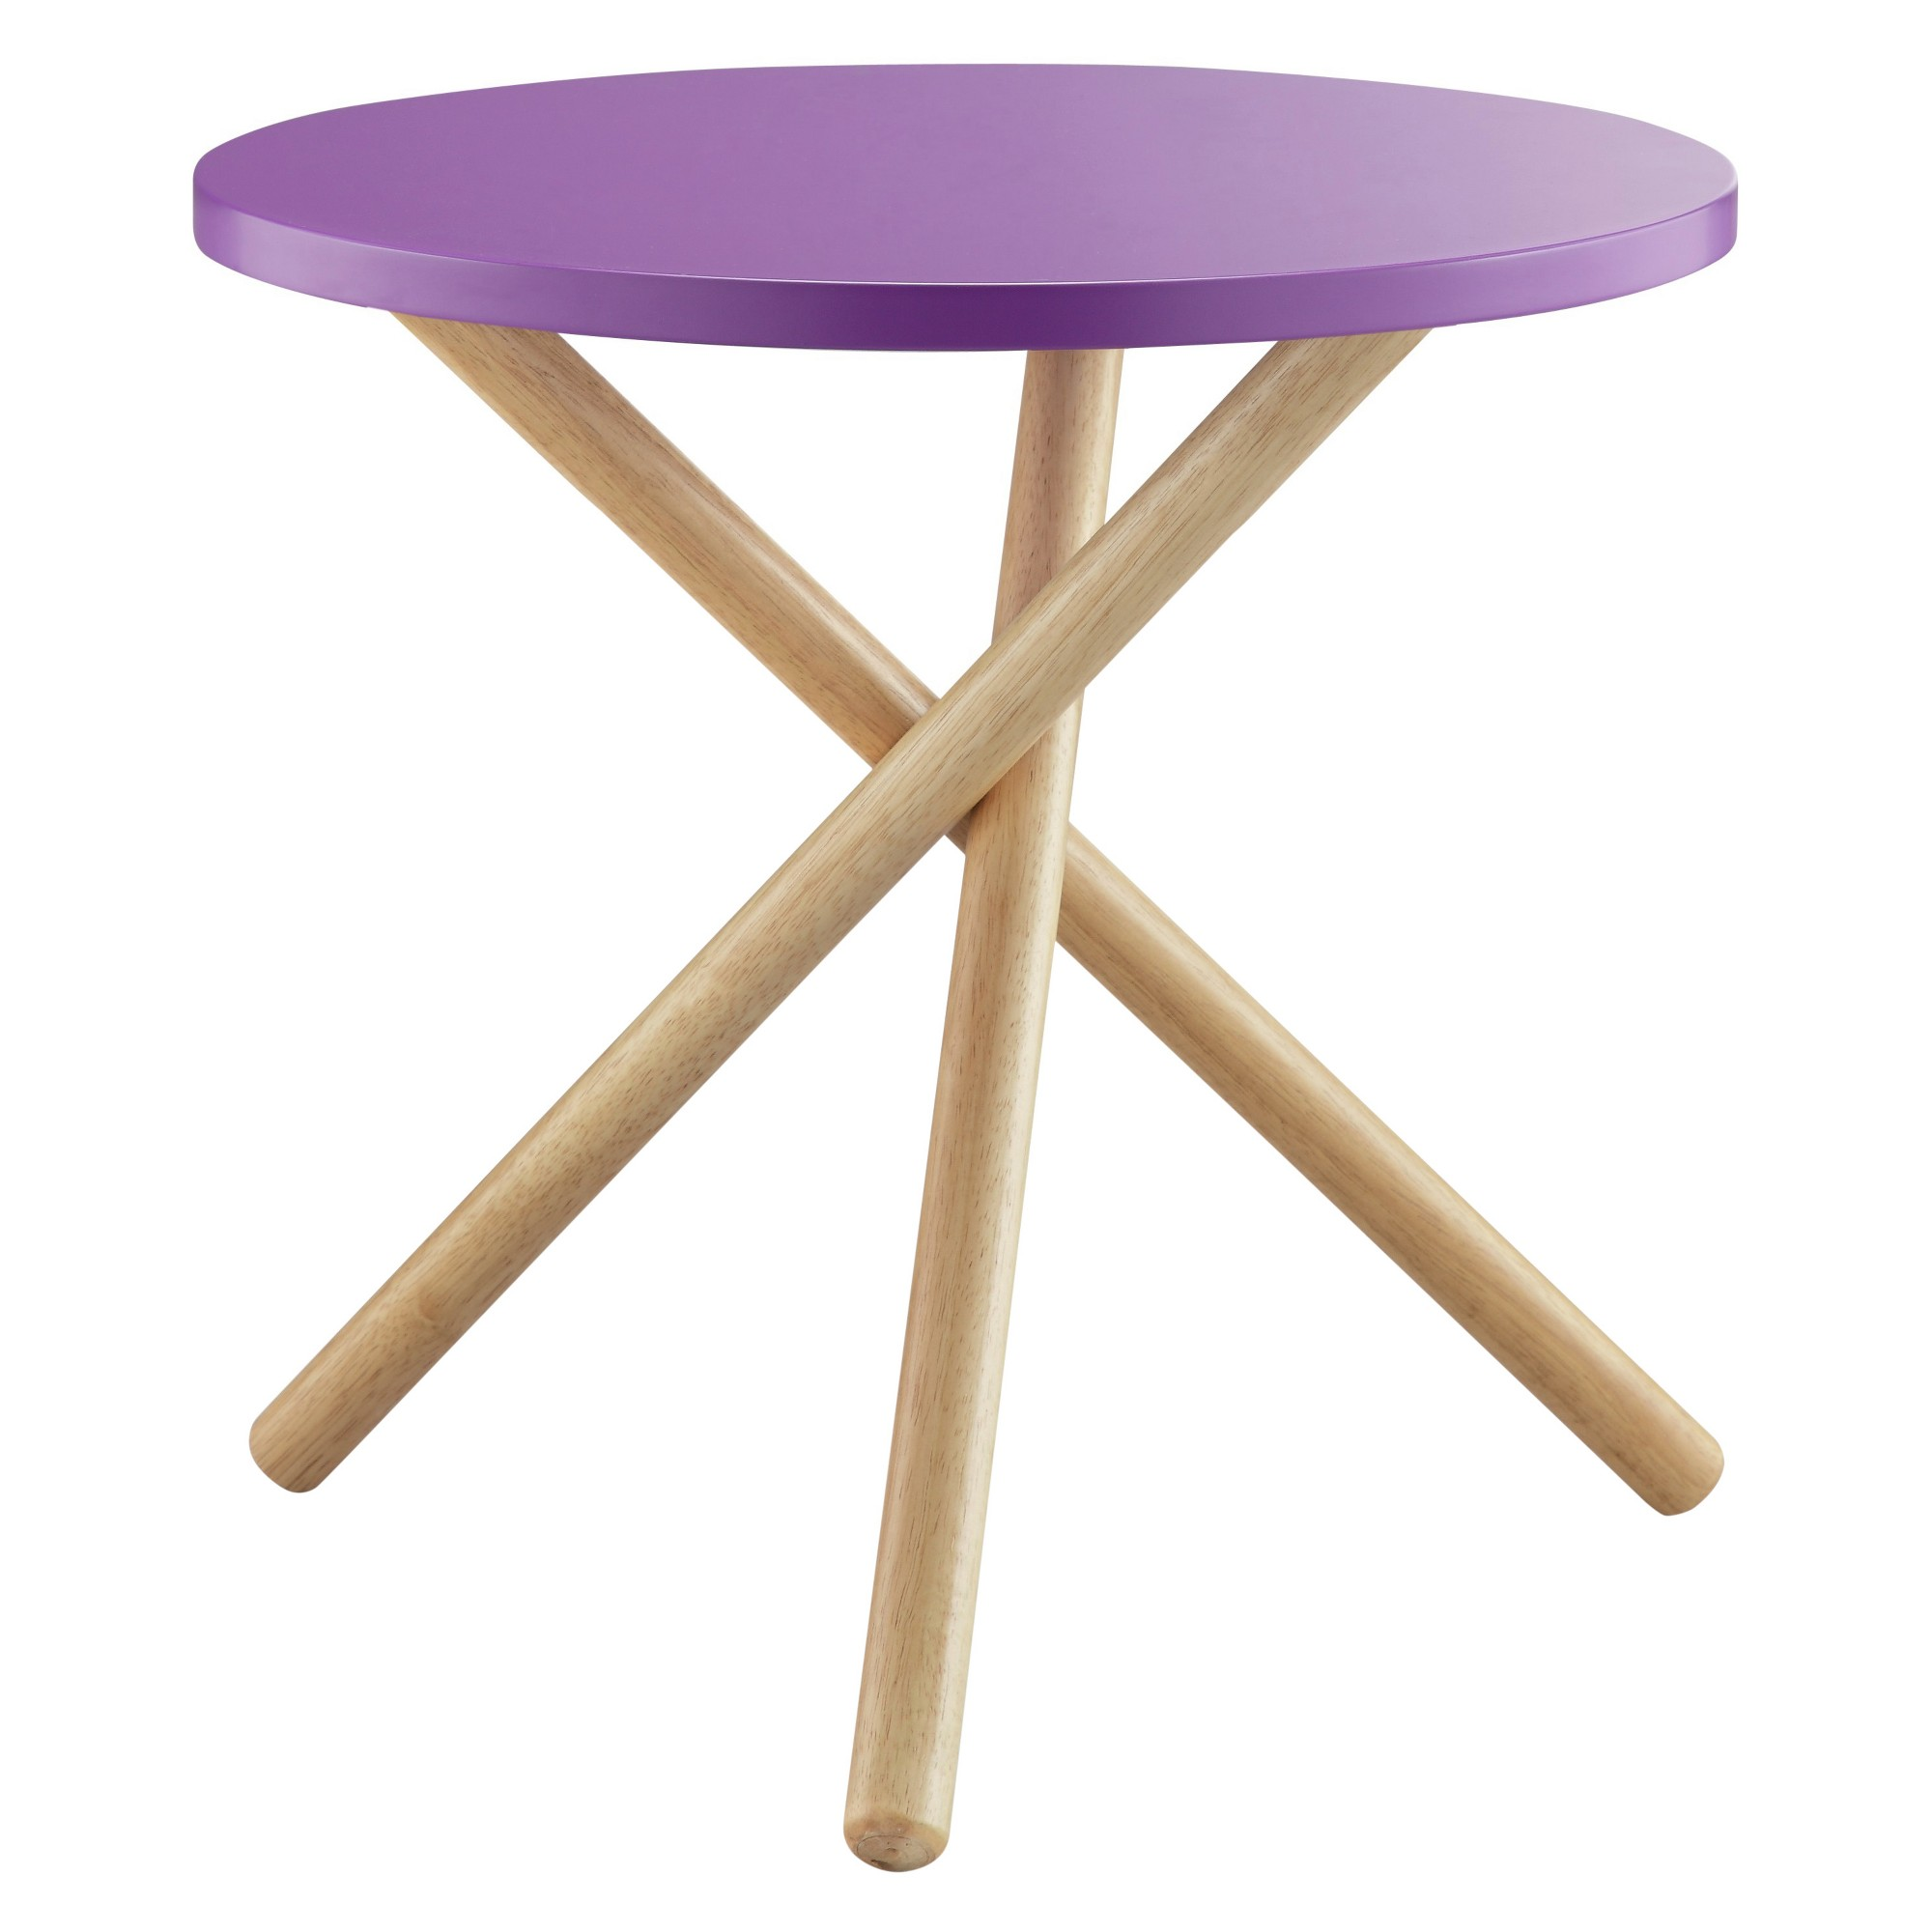 end table purple accent tables accents and products neelan round foldable coffee ikea coastal inspired lighting diy rustic cherry wood small farmhouse dining screw wooden legs